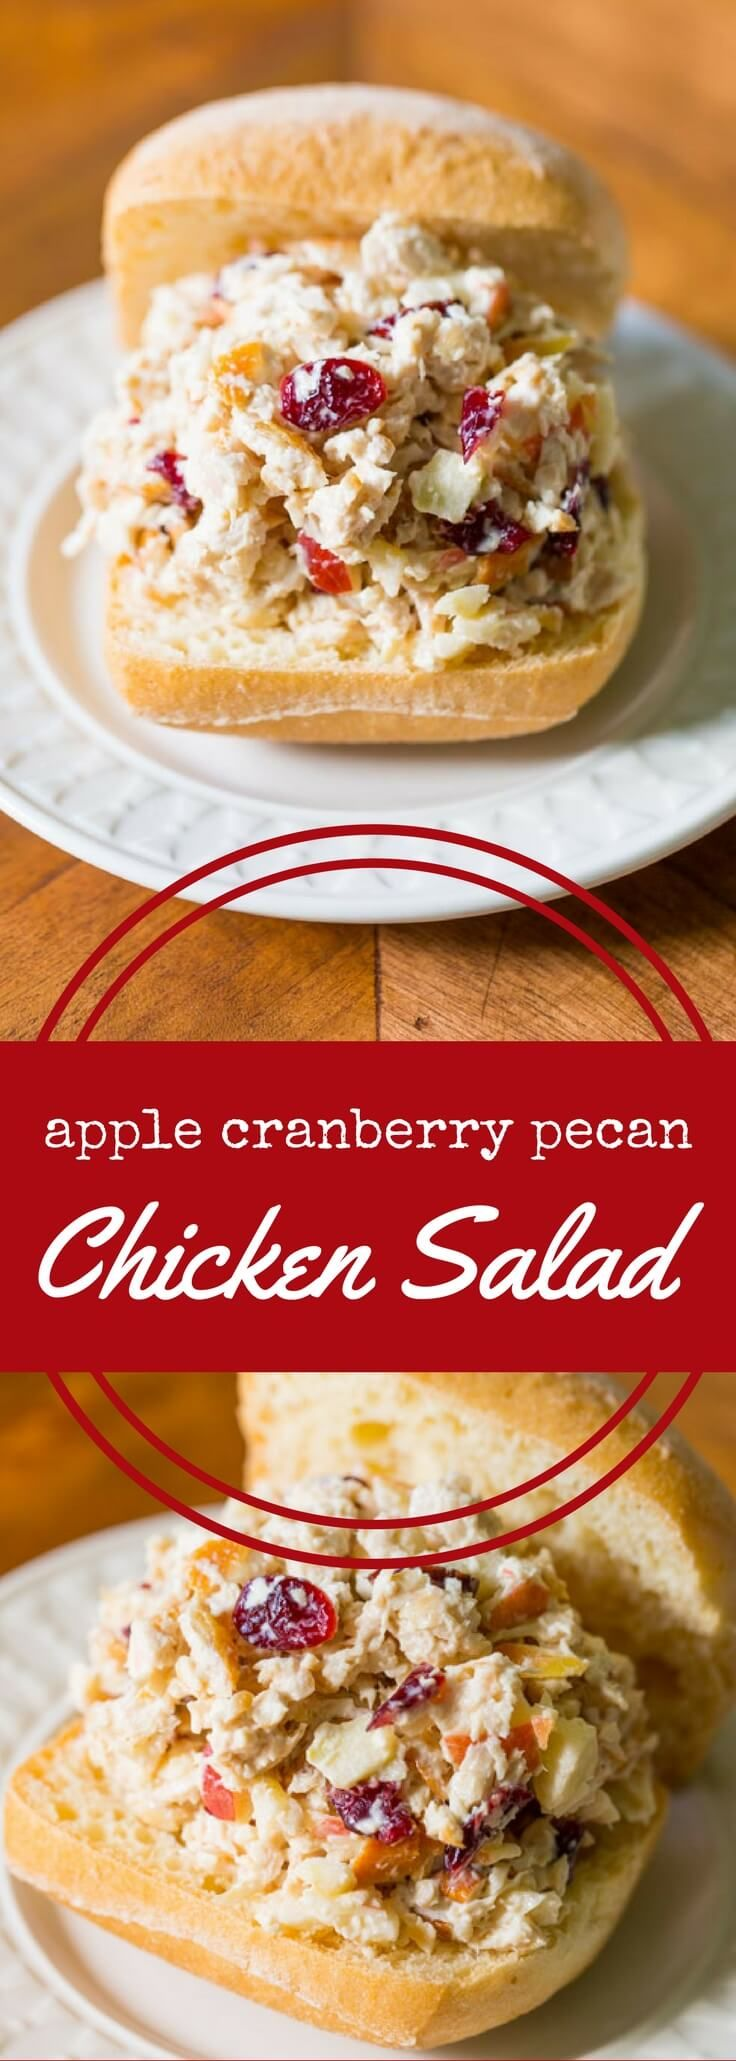 #ad #NinjaSnapTapGo #NinjaPartner Classic chicken salad with apples, cranberries, and pecans, in mayonnaise. Simple ingredients and easy to follow instructions. Serve on sandwiches or salad!